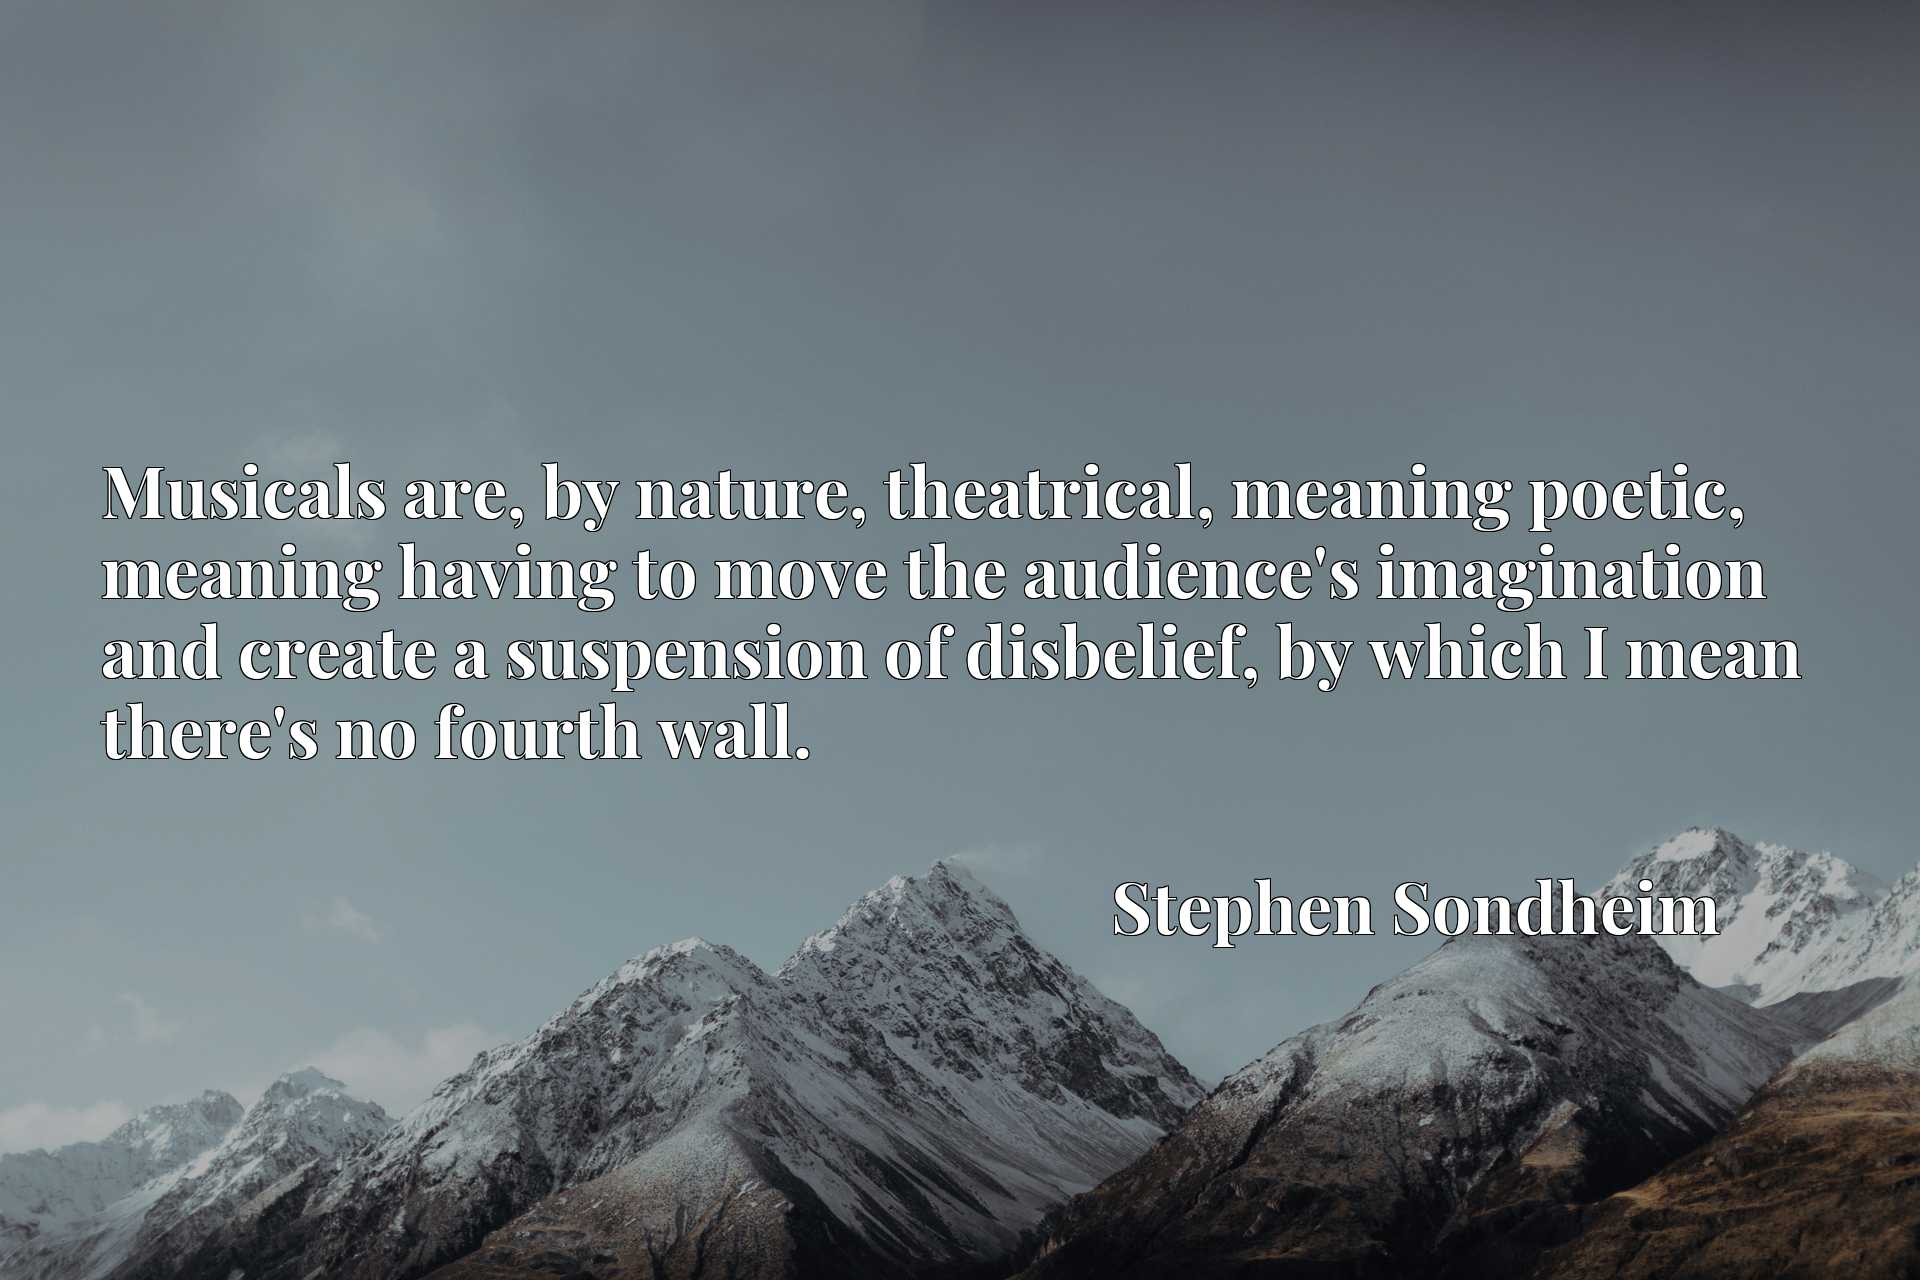 Quote Picture :Musicals are, by nature, theatrical, meaning poetic, meaning having to move the audience's imagination and create a suspension of disbelief, by which I mean there's no fourth wall.